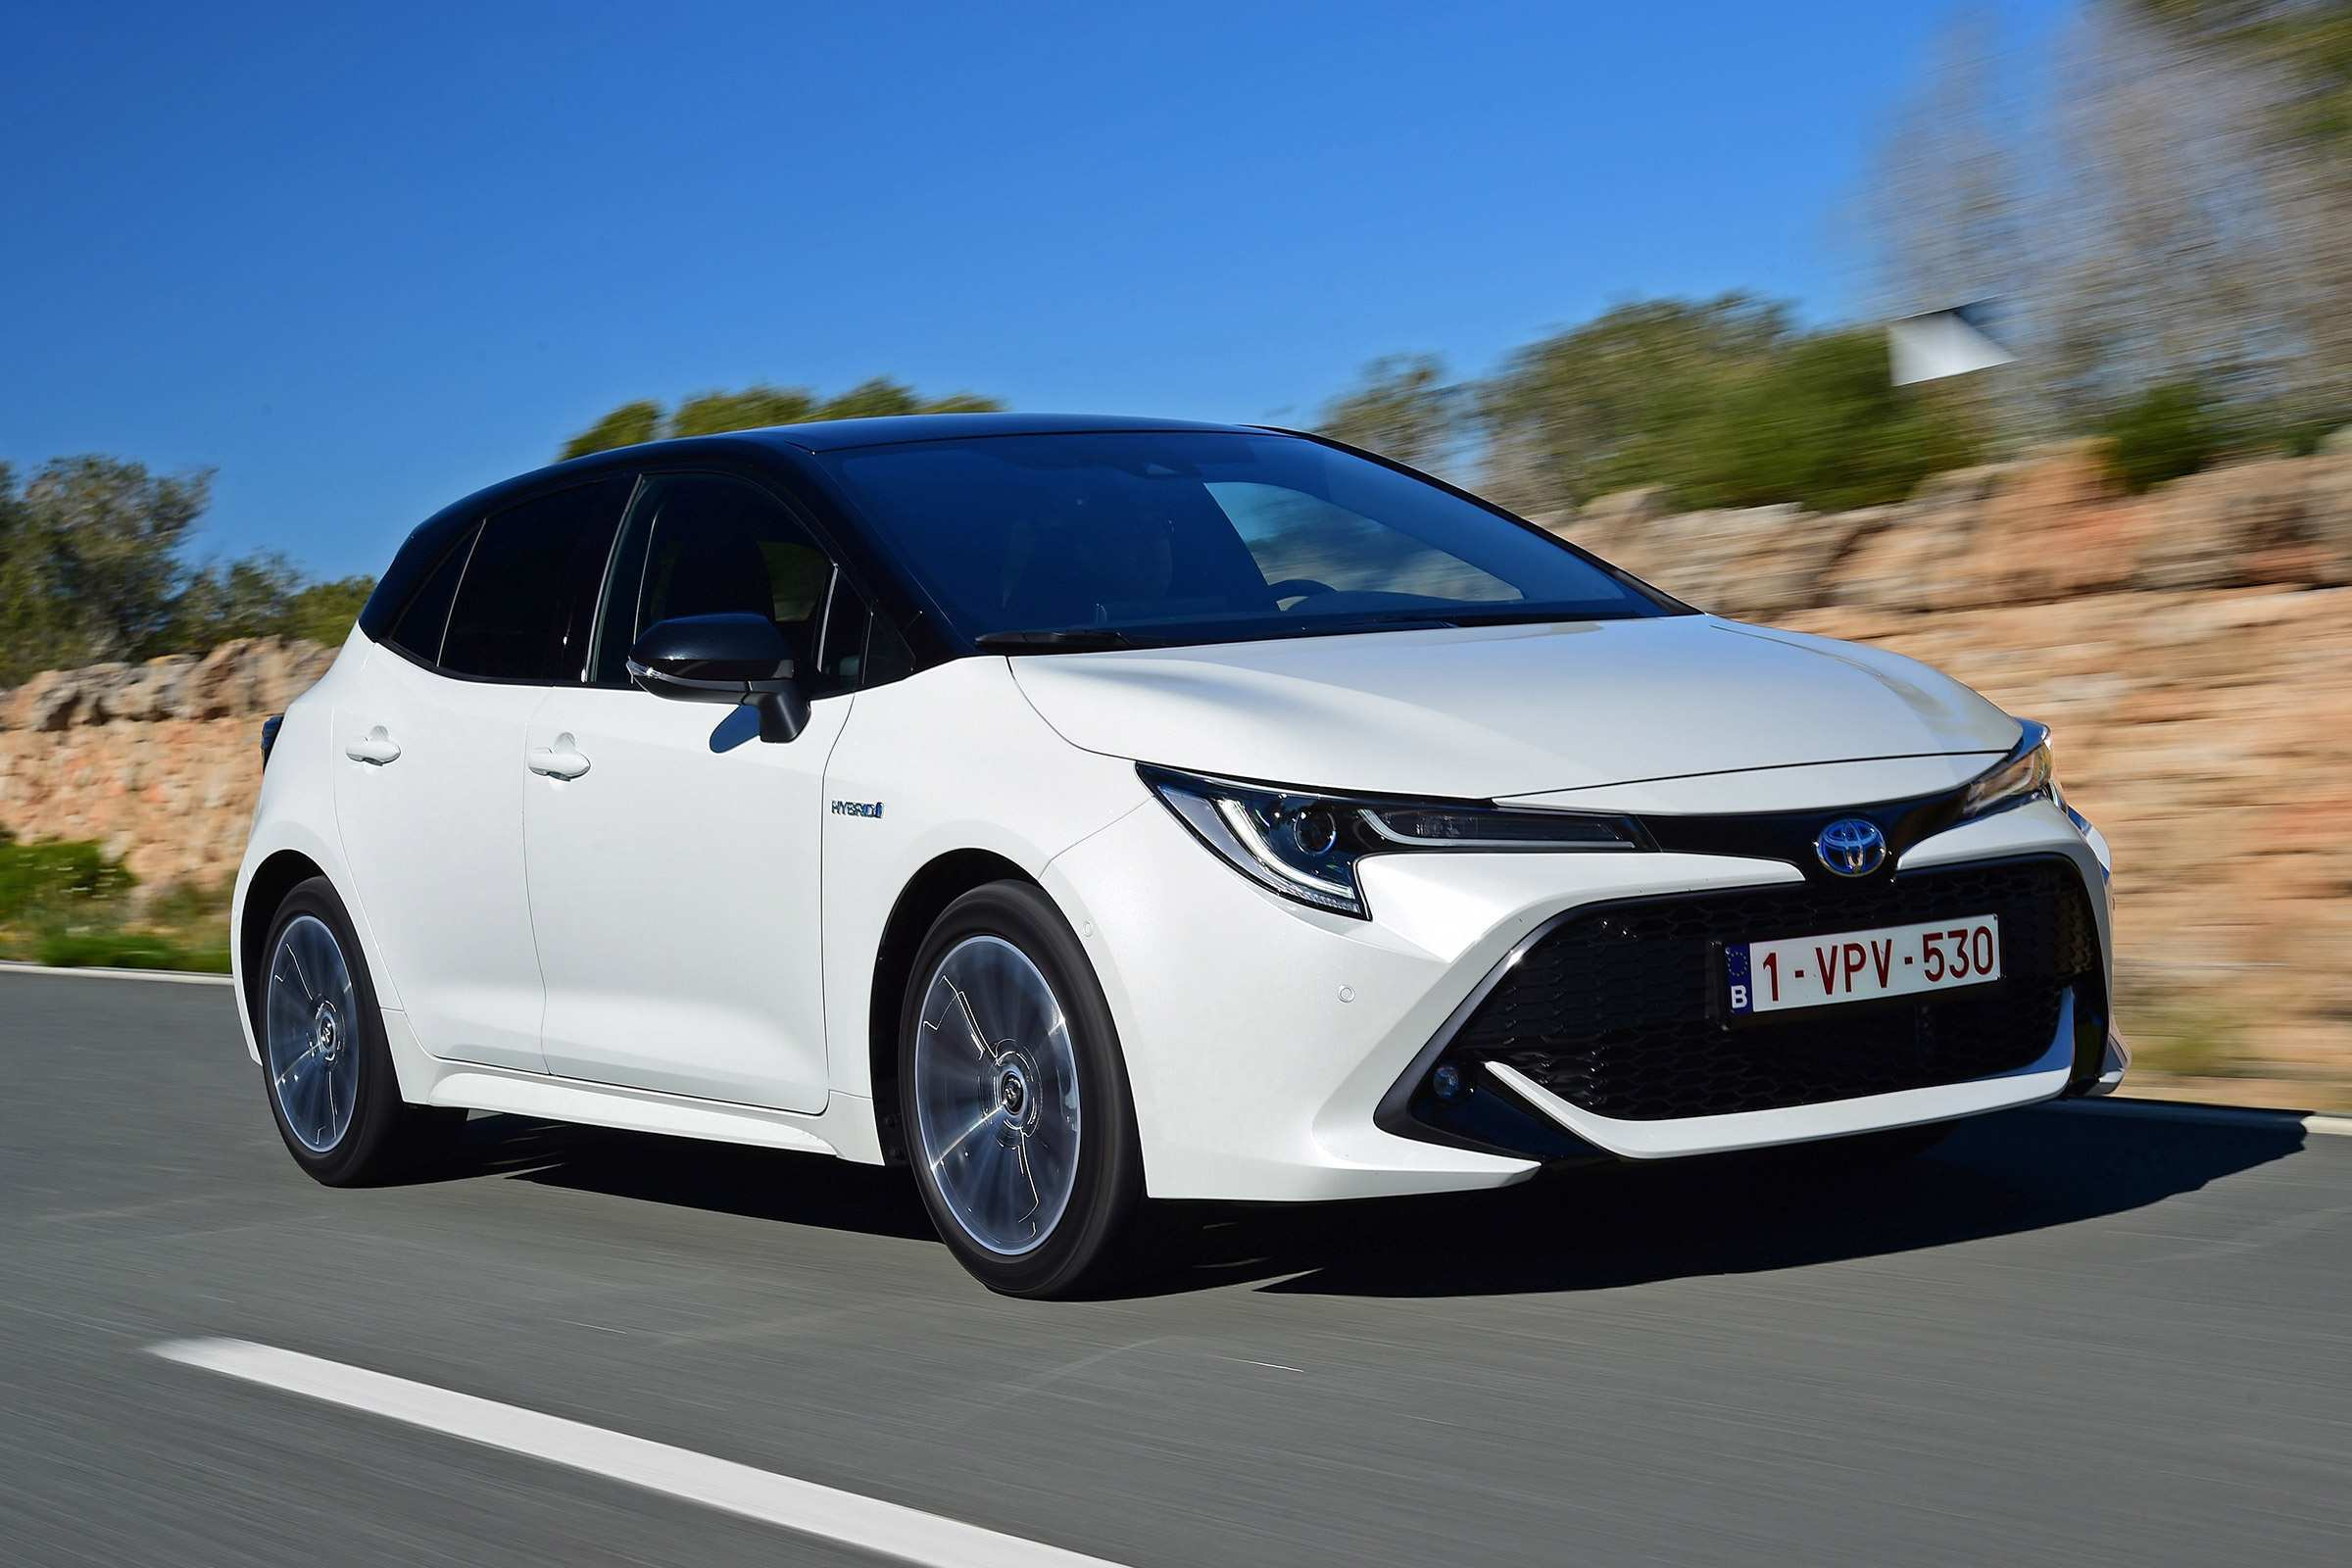 77 The Best Toyota Corolla 2019 Uk Overview